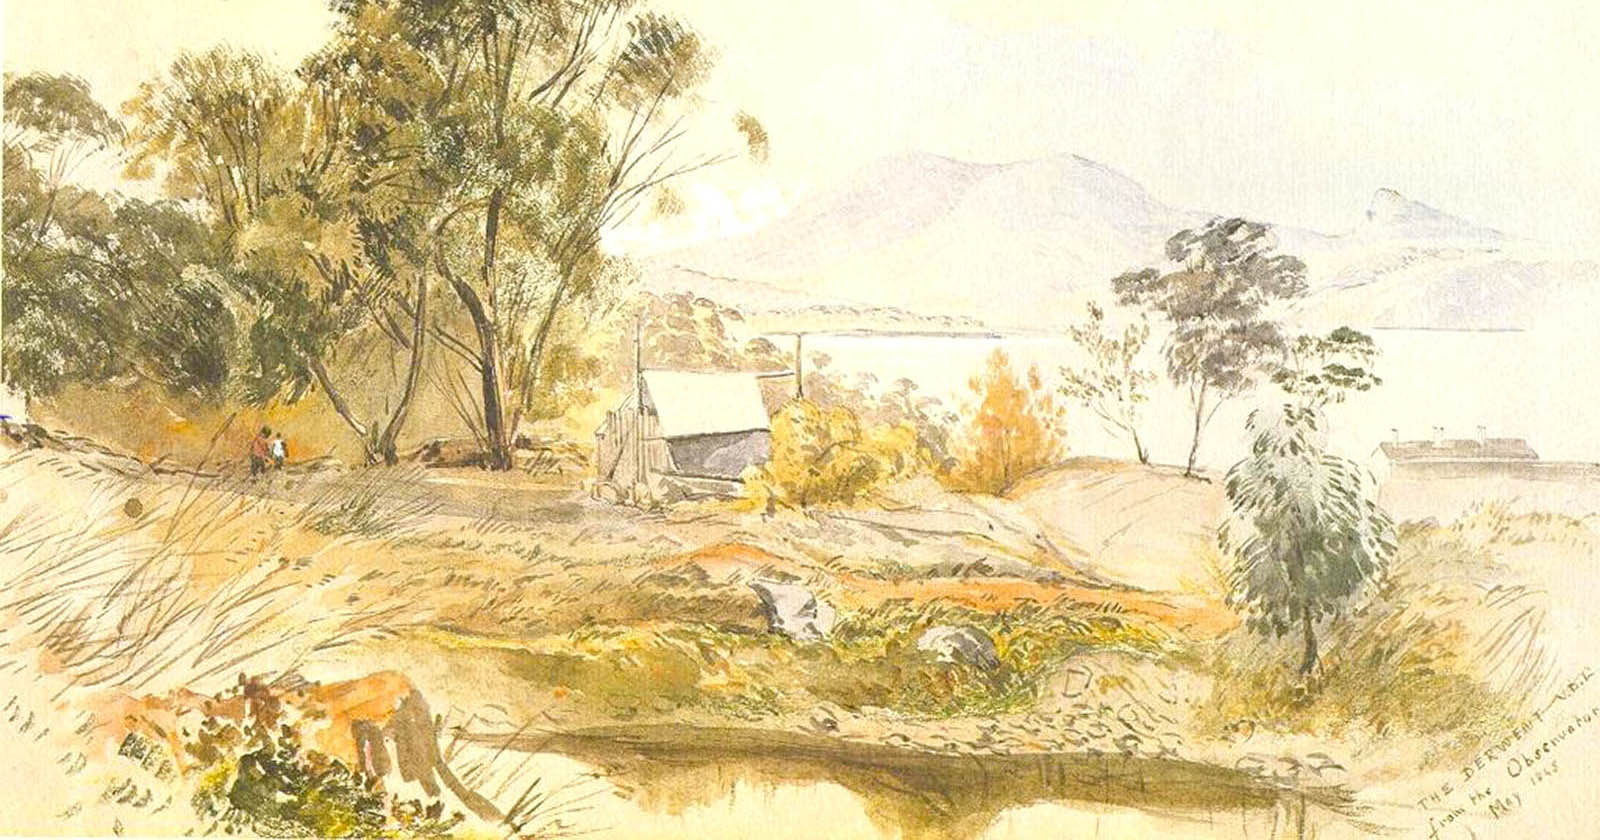 Print of an early watercolour of the botanical gardens site before before 1845 artist unknown